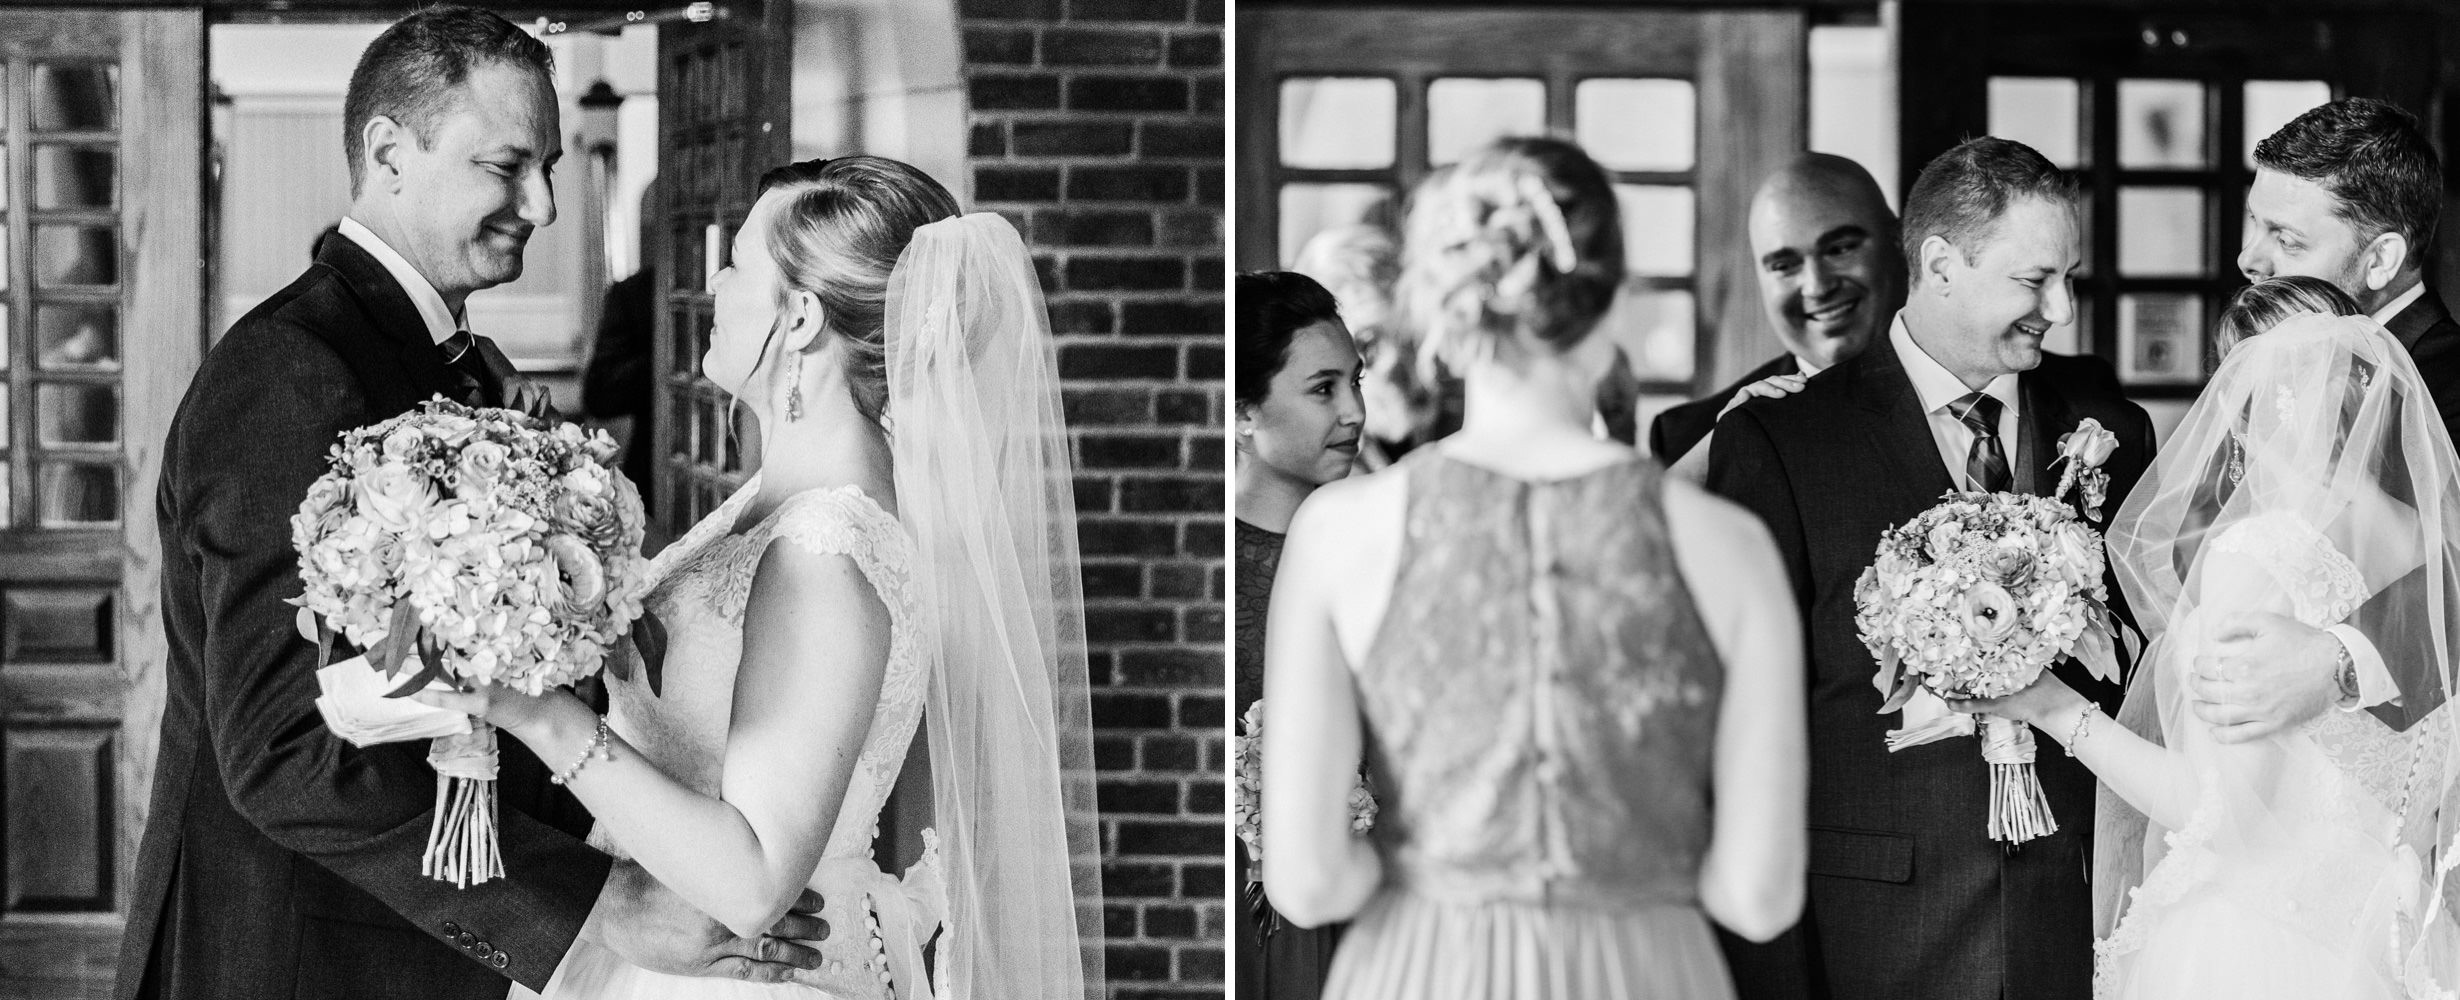 MAULDIN_WEDDING_MONTGOMERY_ALABAMA_WEDDING_PHOTOGRAPHY_69